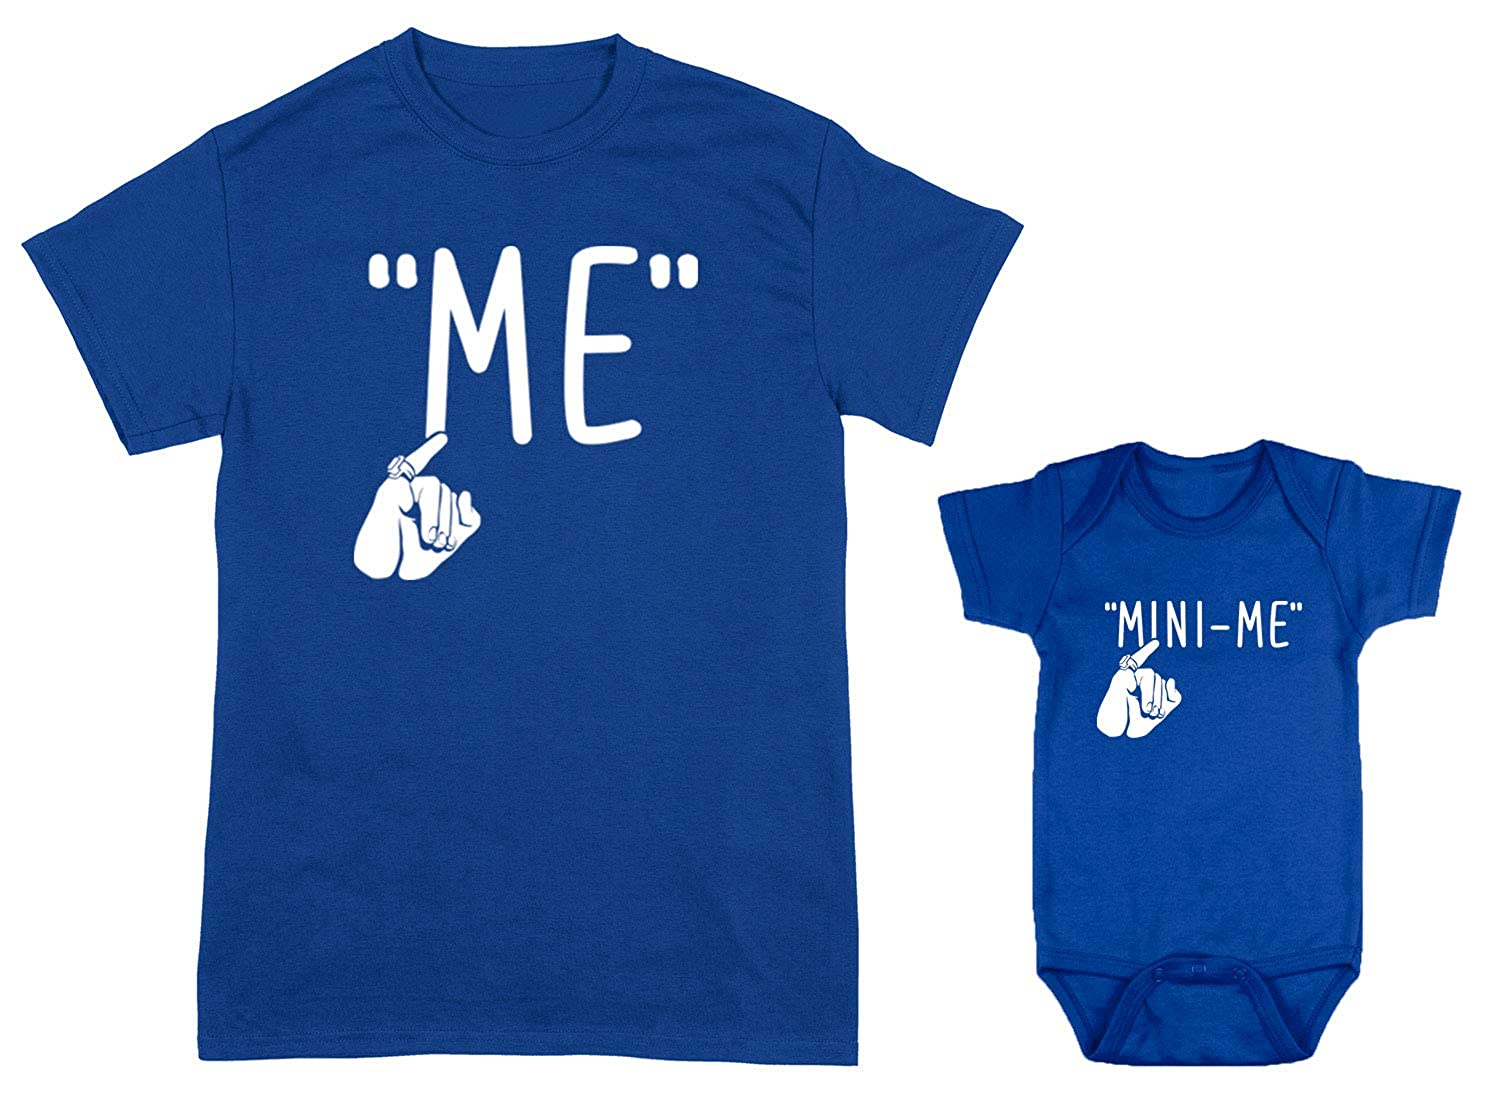 e2c0703f15 Amazon.com  HAASE UNLIMITED Me Mini-Me 2-Pack Bodysuit   Men s T-Shirt  (Royal Royal